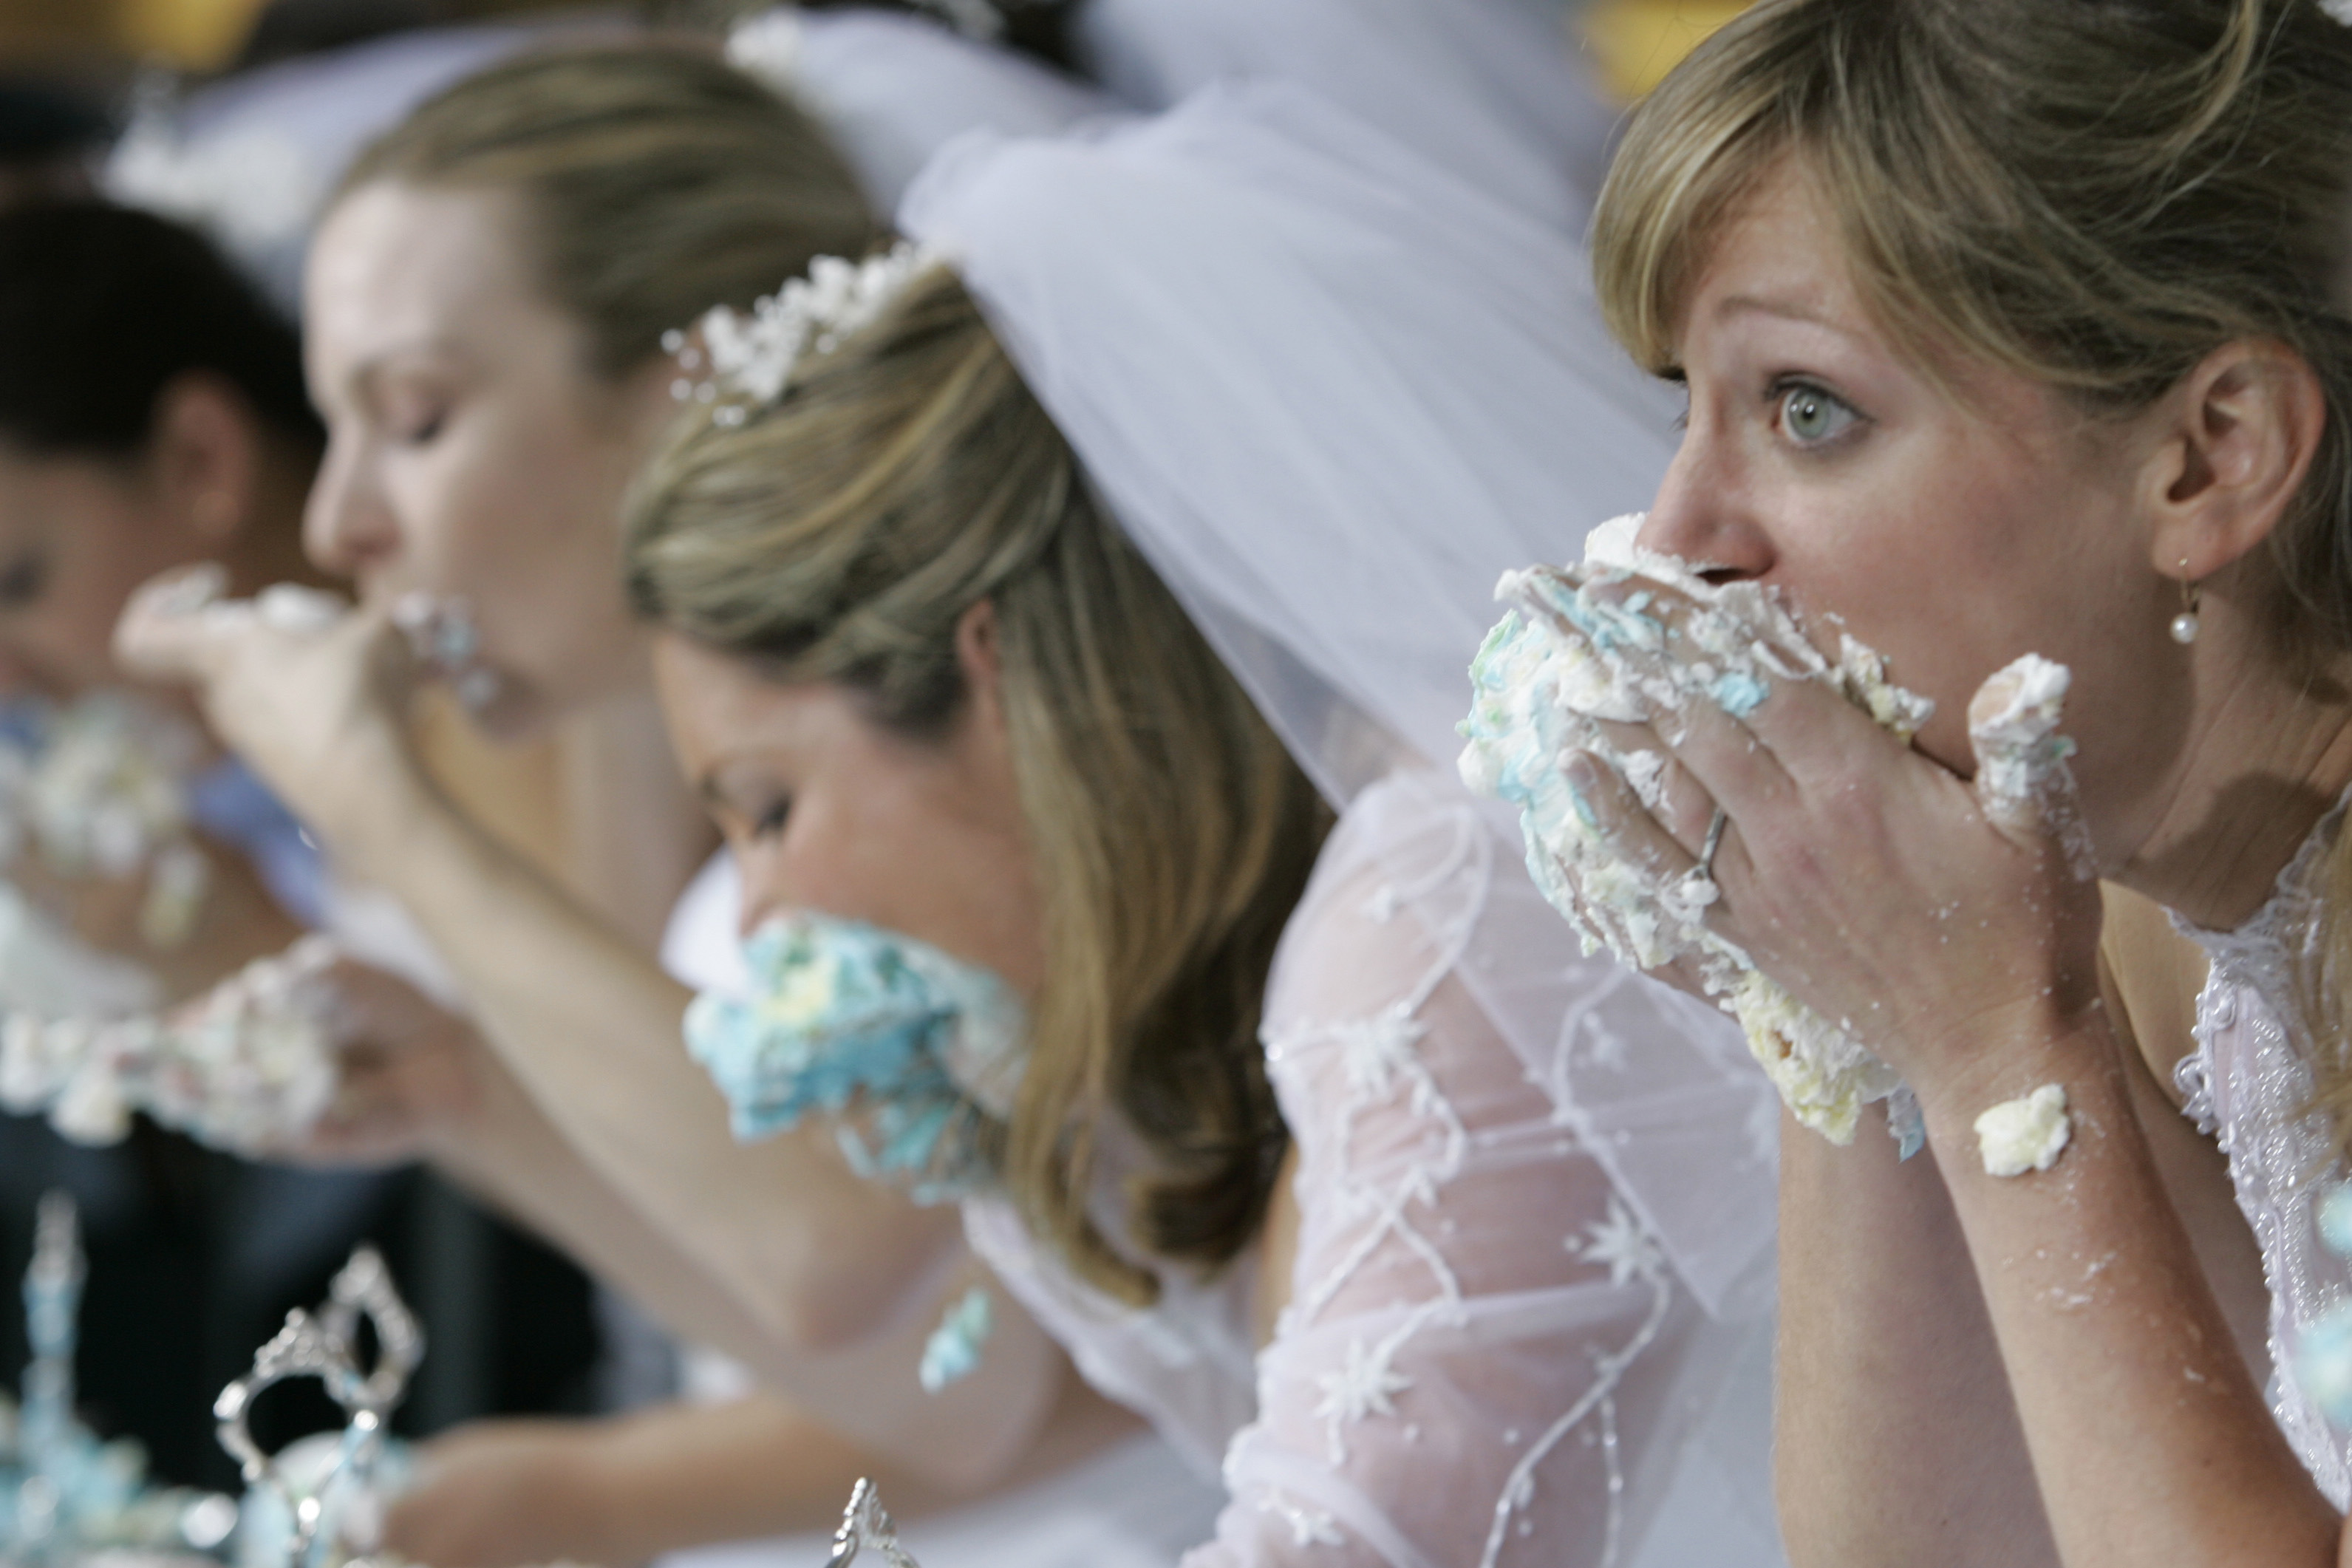 Contestants face off in WE TV's cake eating contest in June of 2007. The 15 brides faced off in Times Square for a grand prize of $25,000 to kick off the fourth season of the cable channel's 'Bridezillas' series. (AP/Mary Altaffer)